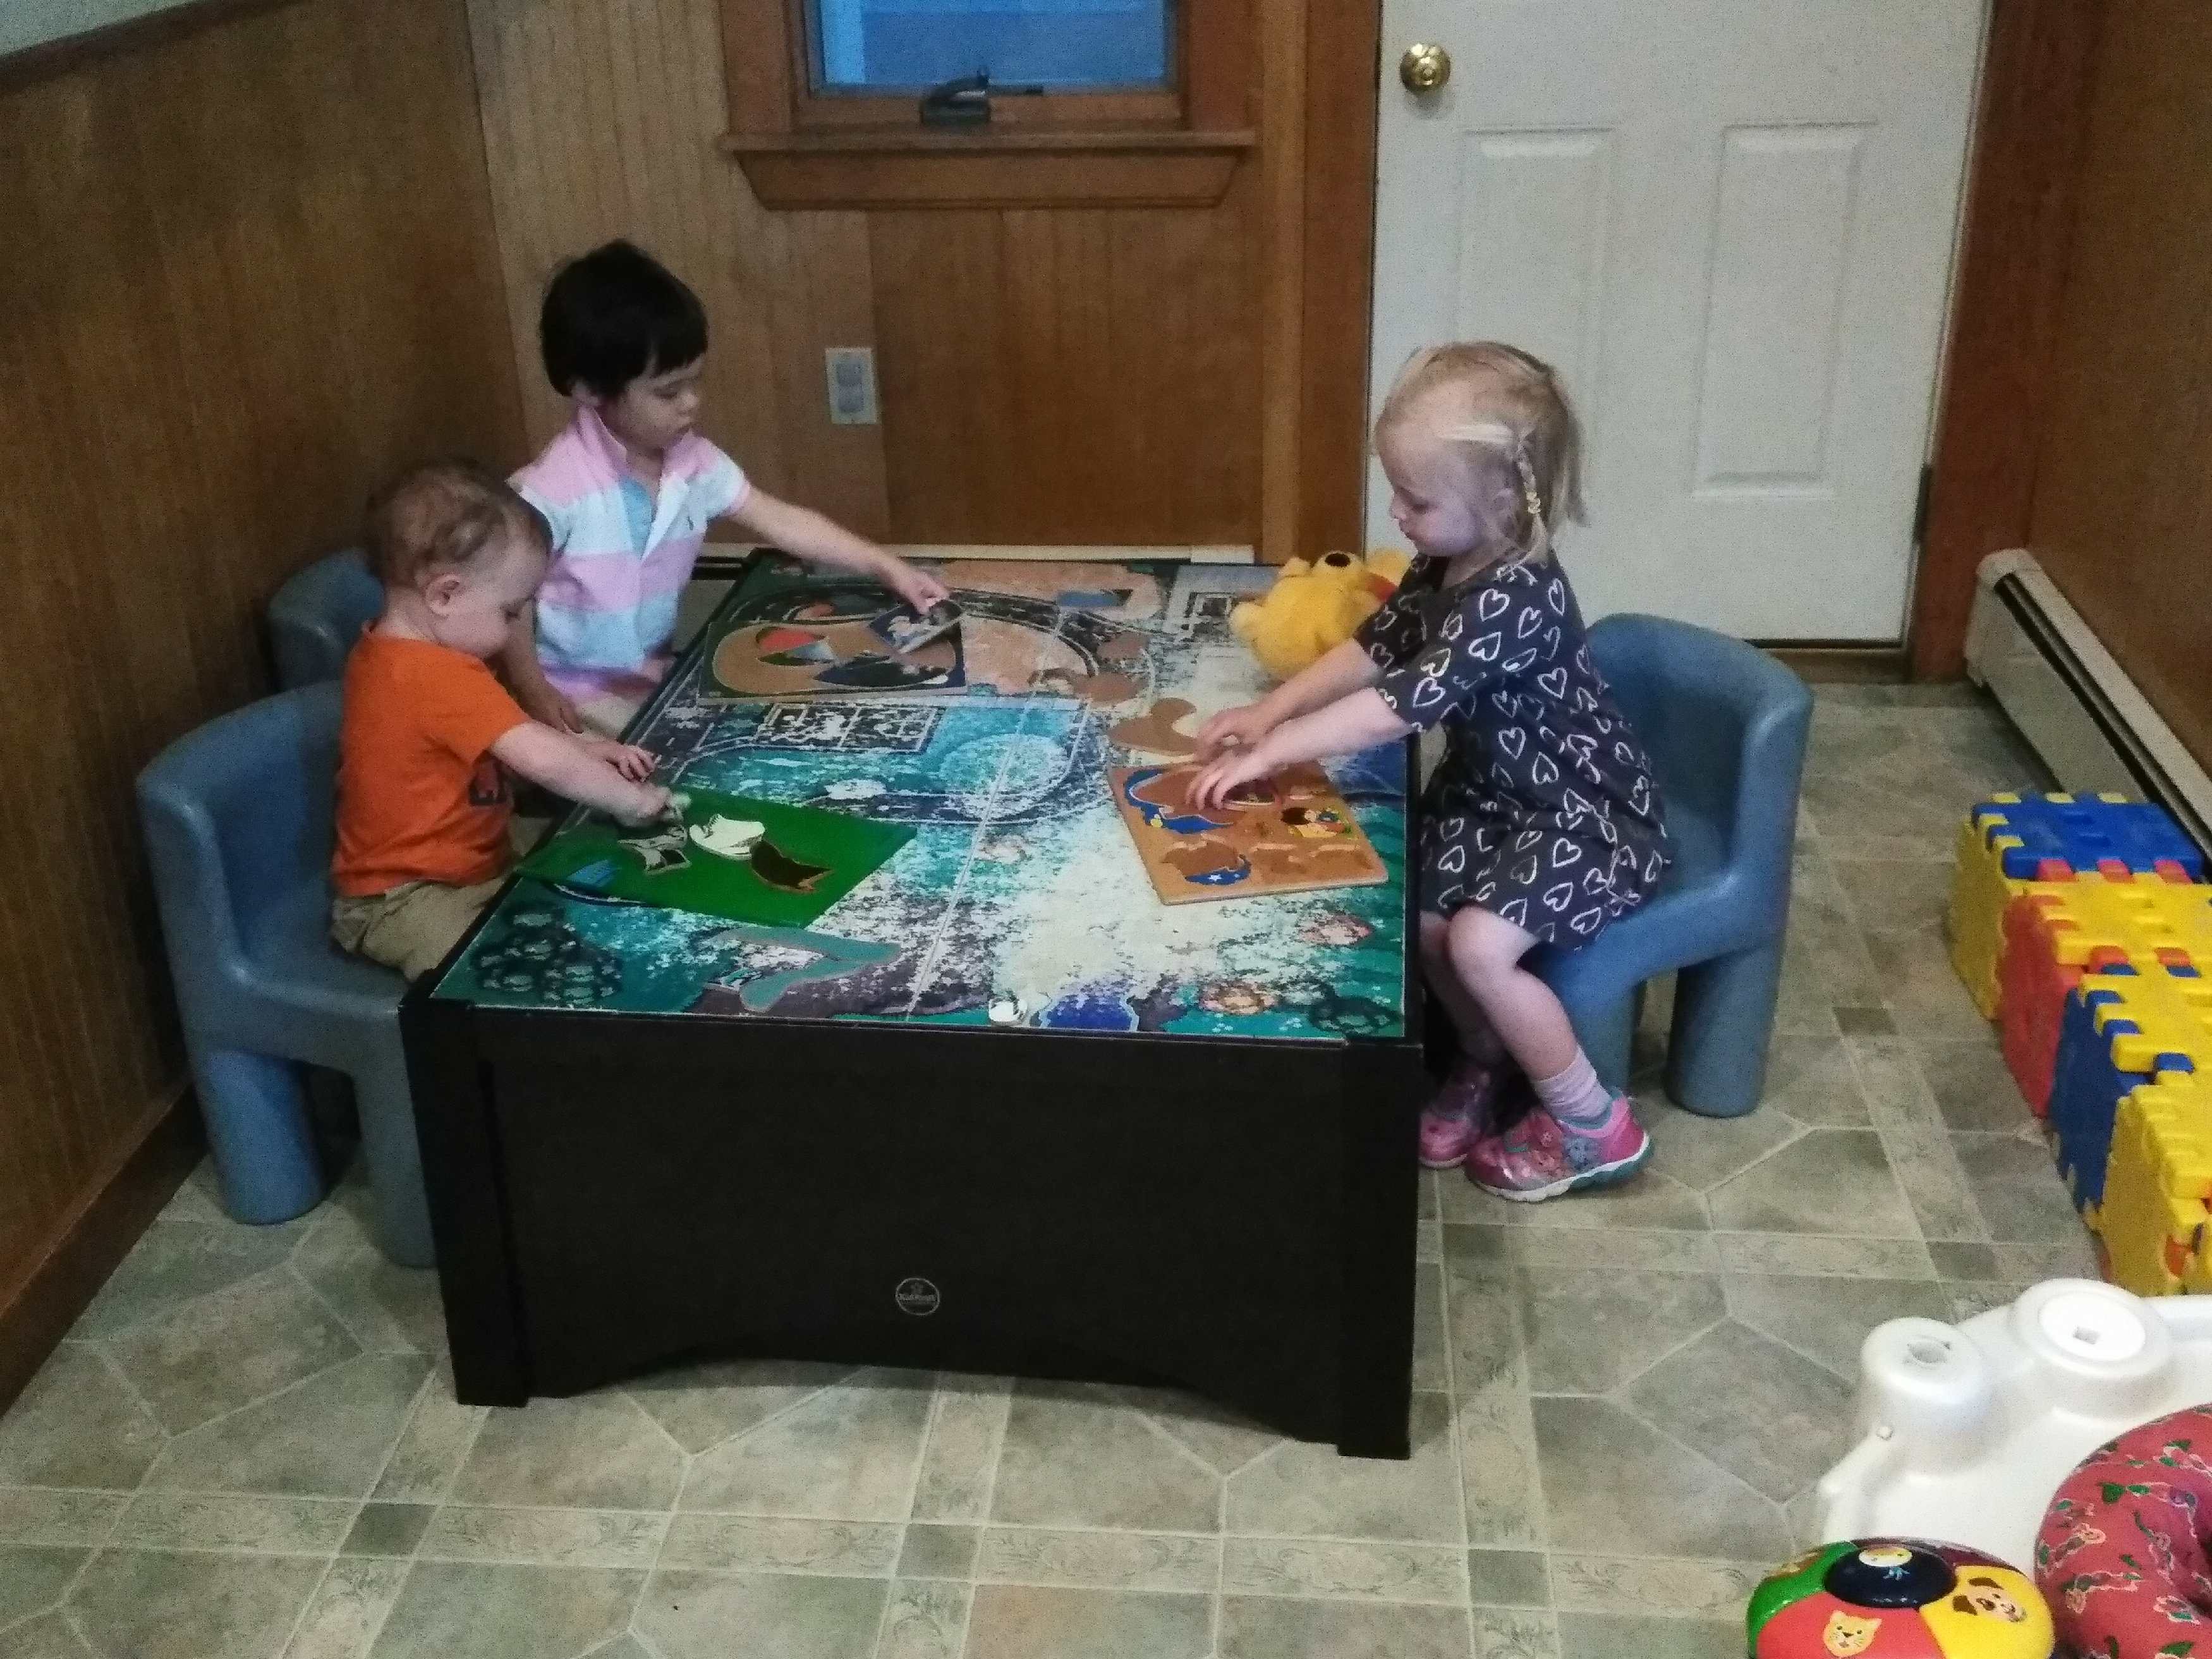 The play table is a favorite.